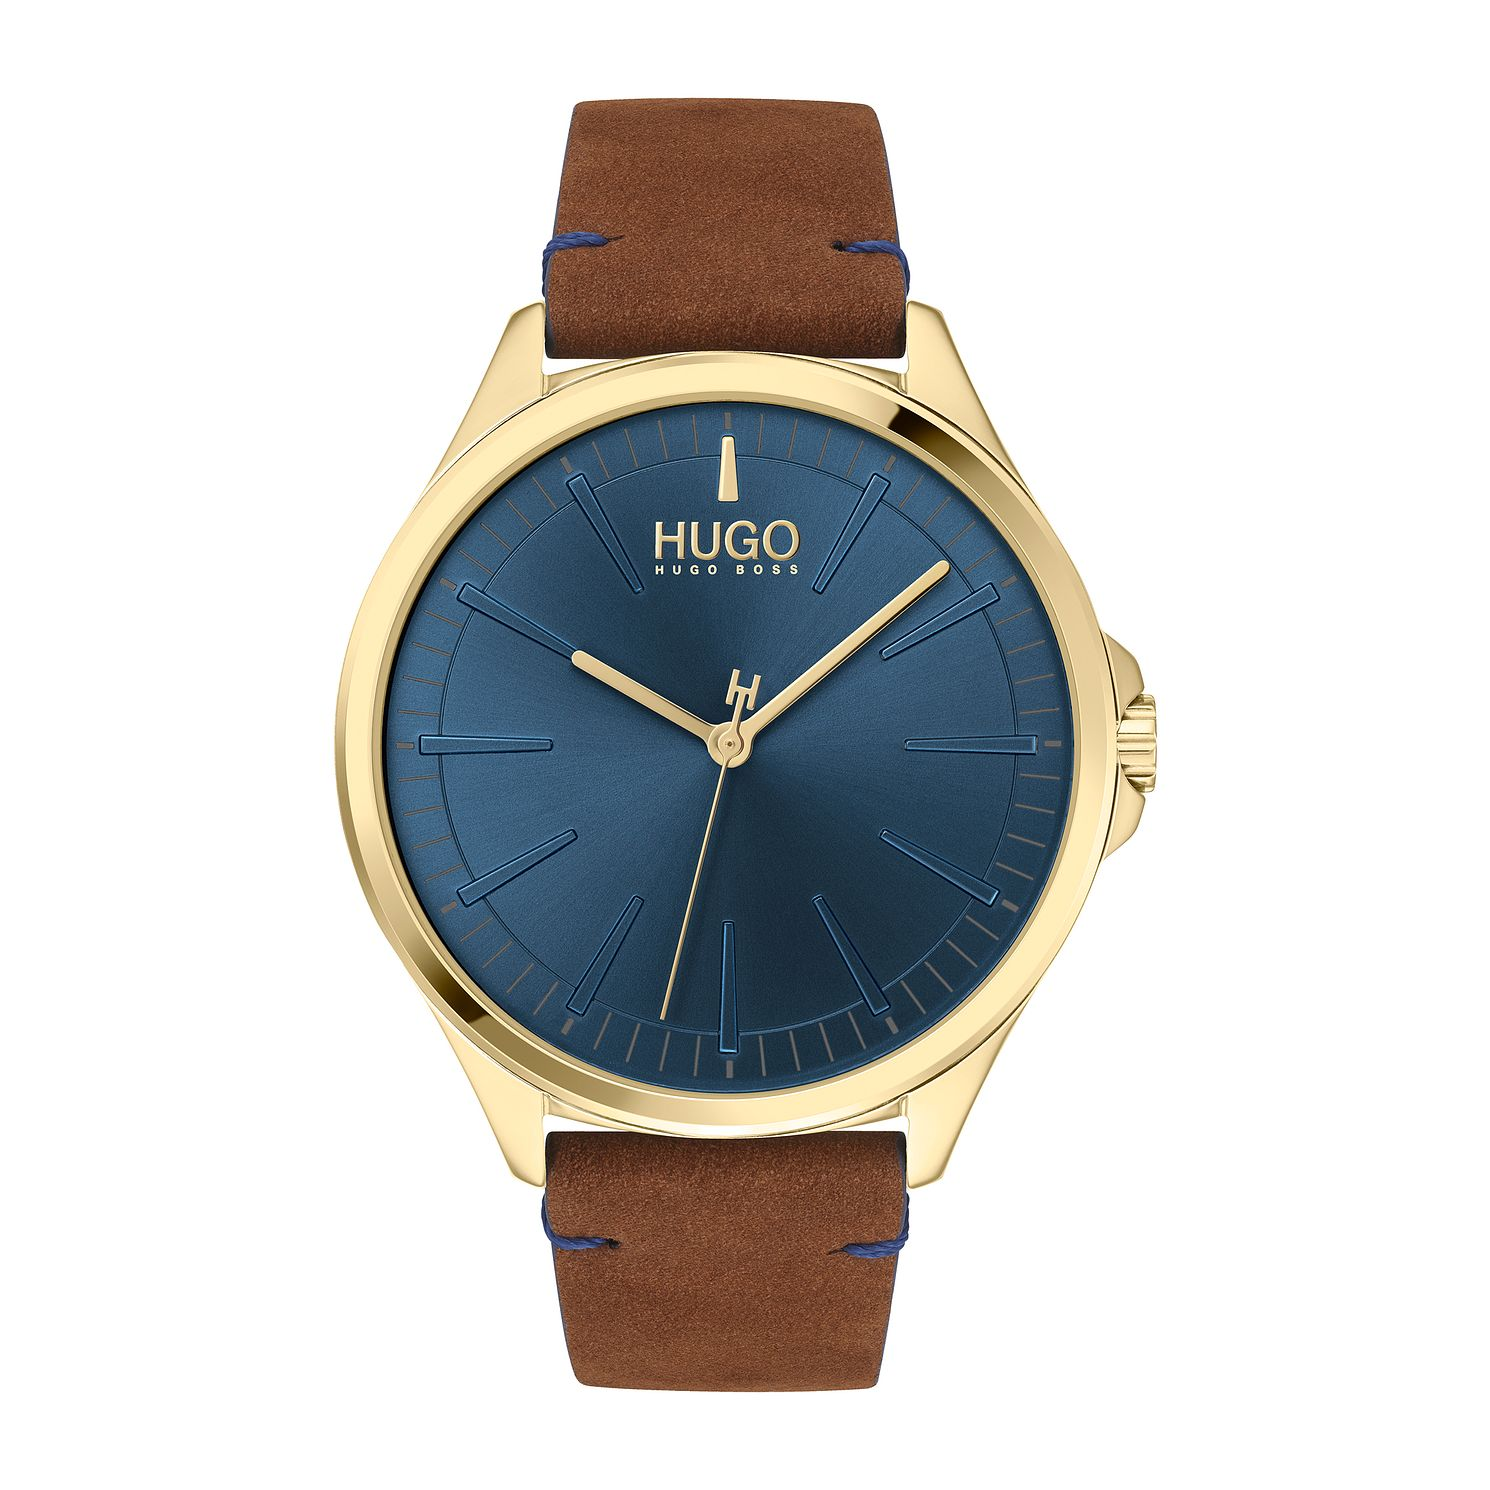 HUGO #SMASH Brown Leather Strap Watch - Product number 4852982